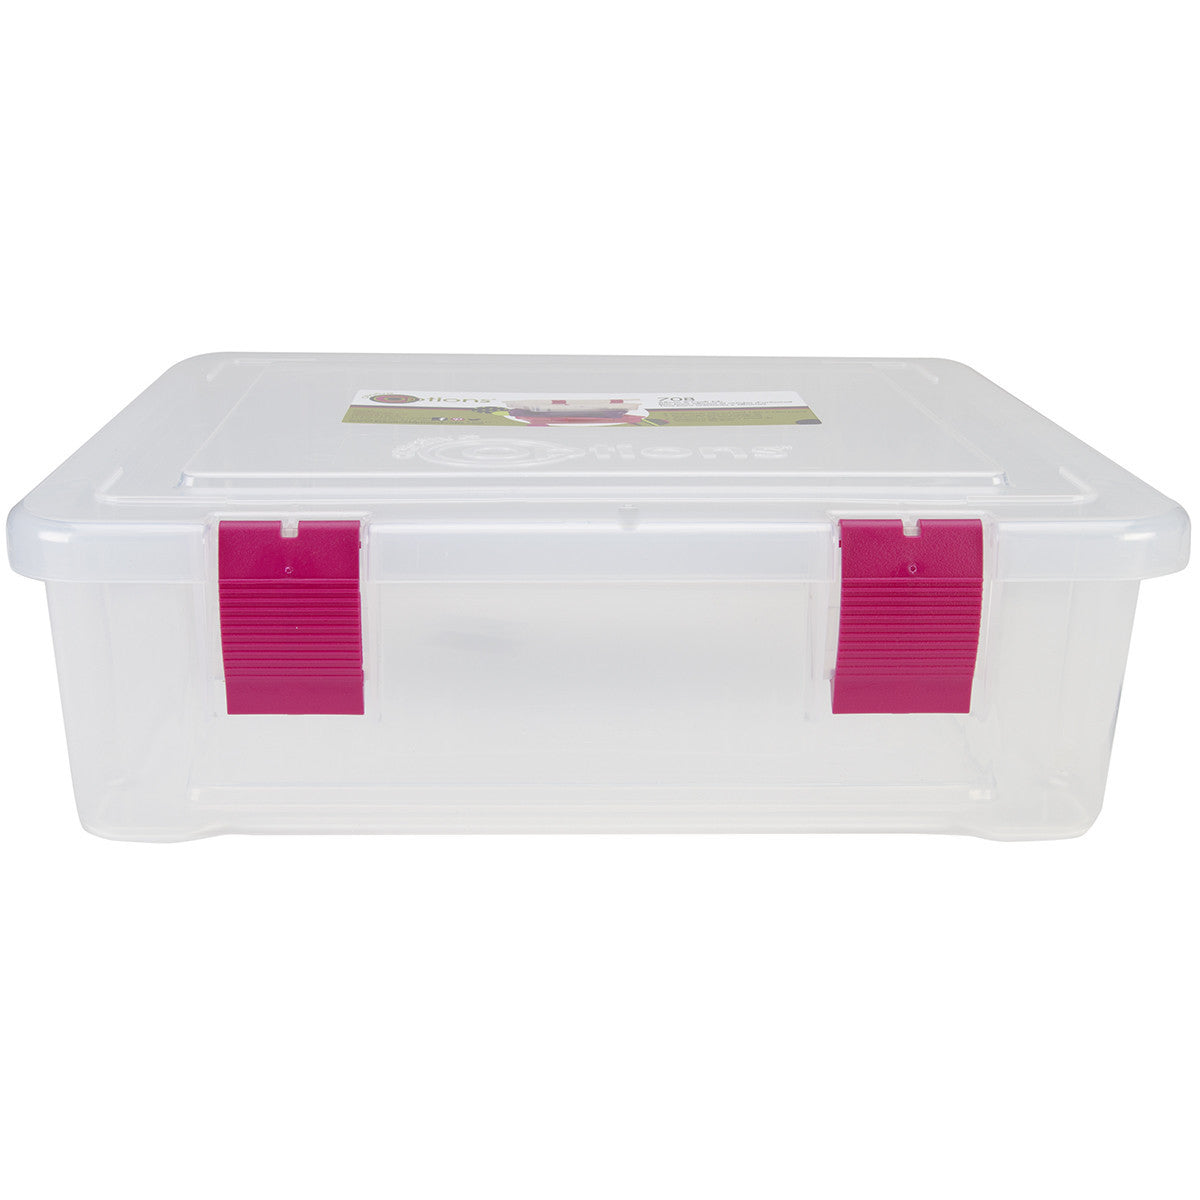 Plastic Storage Boxes Quilting Warehouse